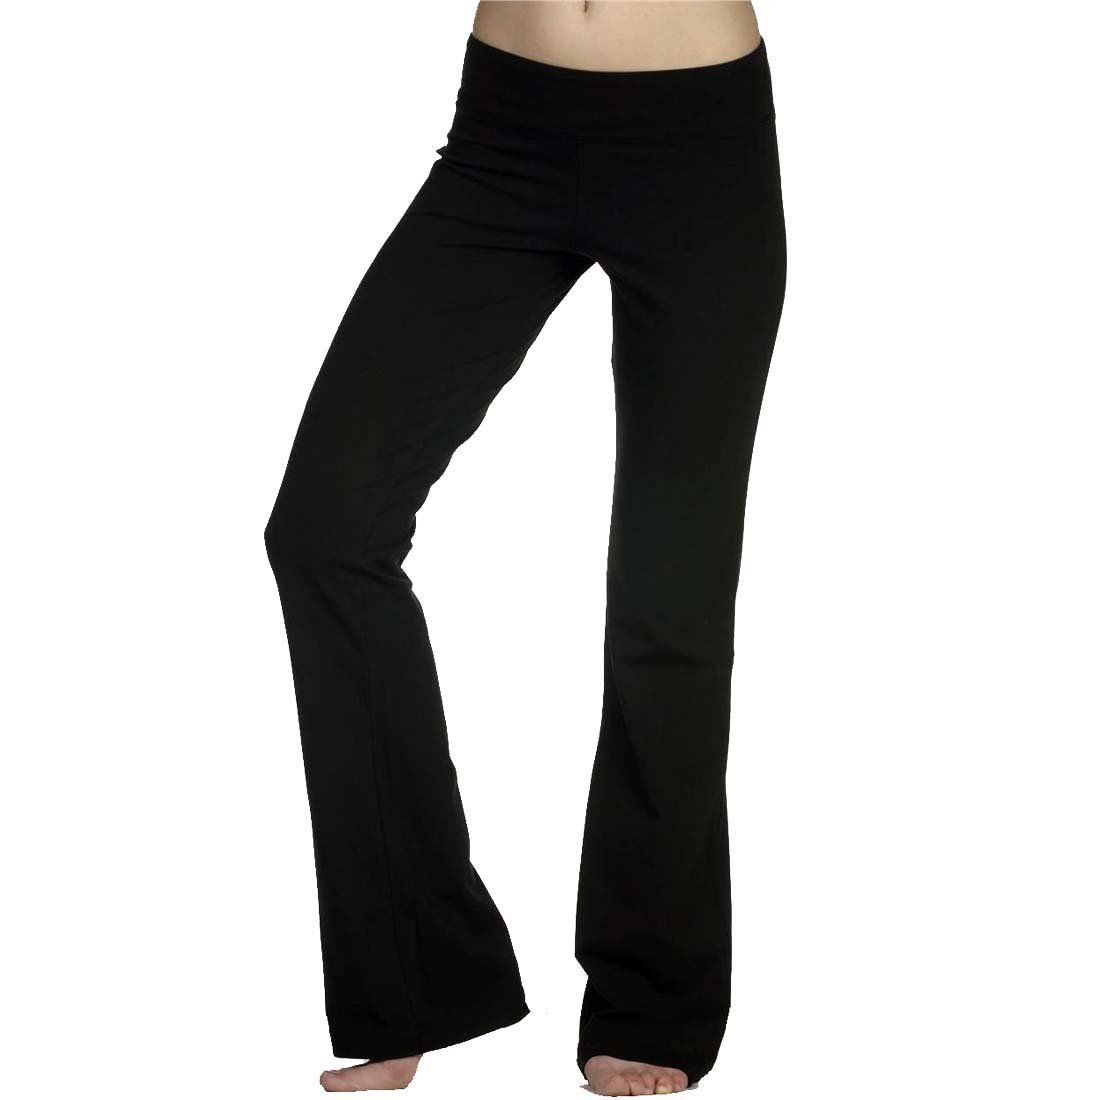 Womens Solid Foldover Solid Bootleg Flare Yoga Trousers